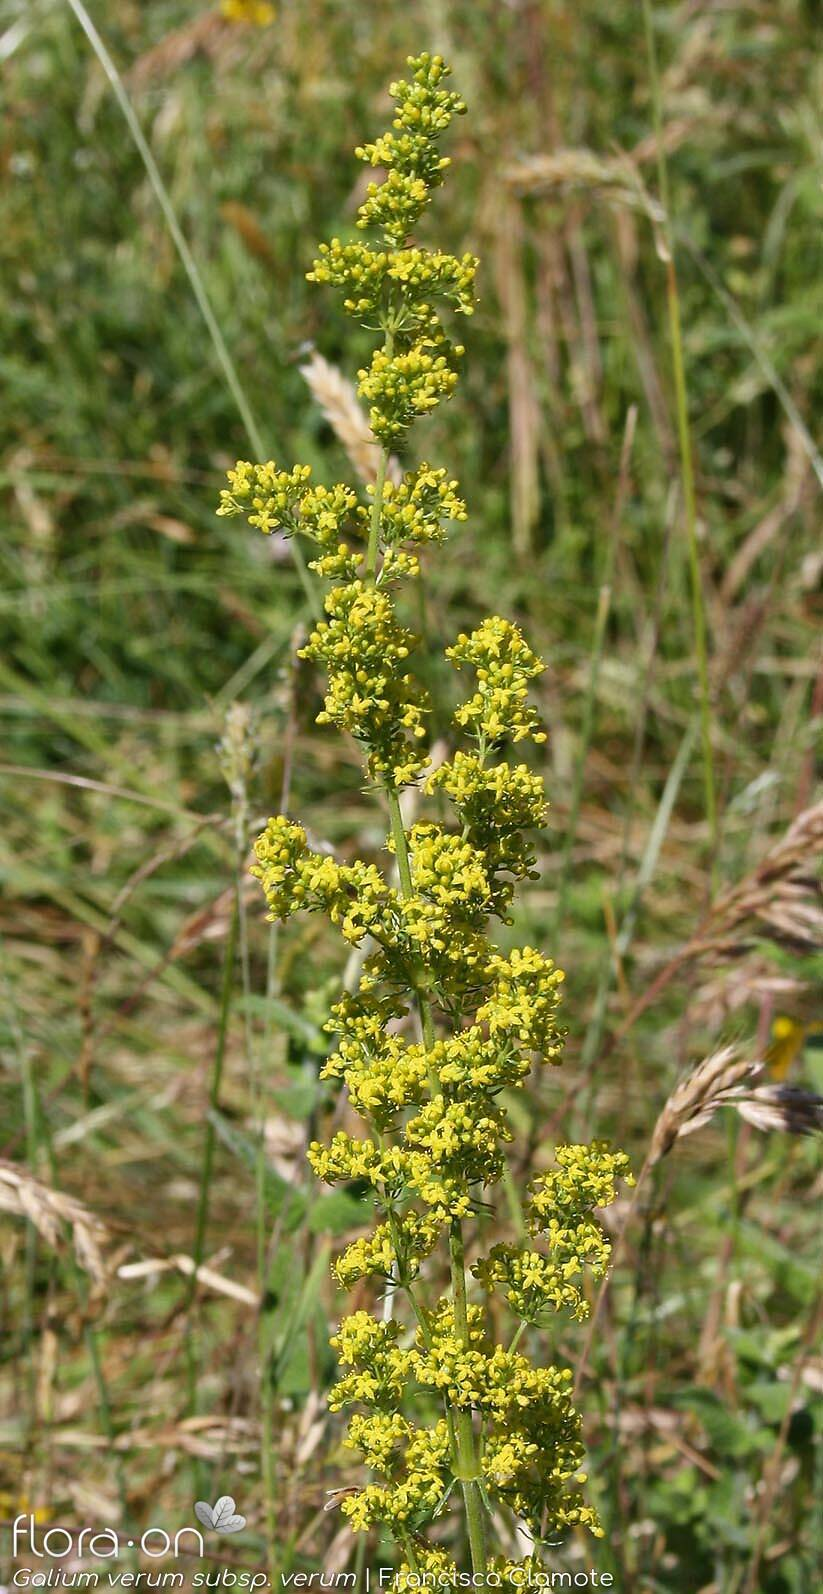 Galium verum verum - Flor (geral) | Francisco Clamote; CC BY-NC 4.0